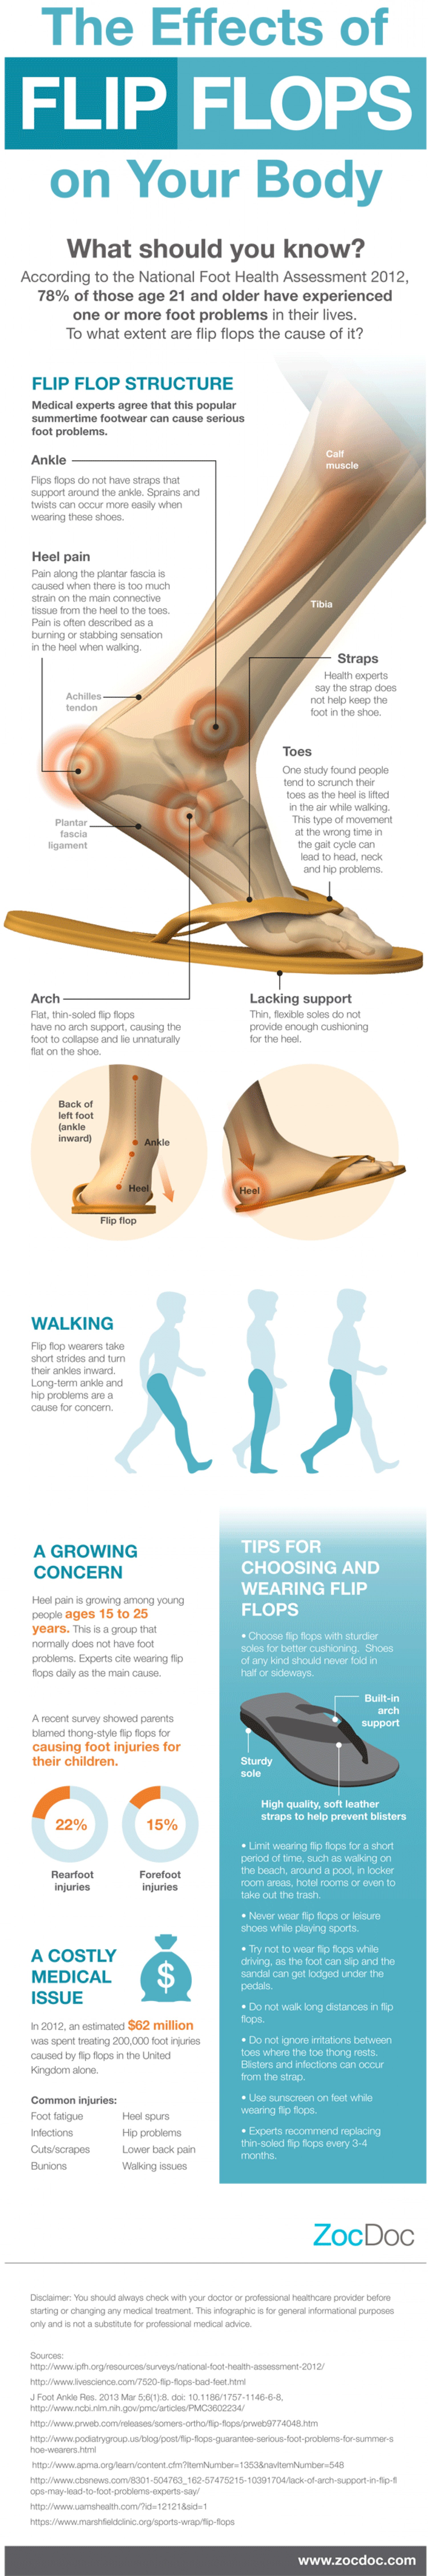 The facts about wearing flip flops infographic